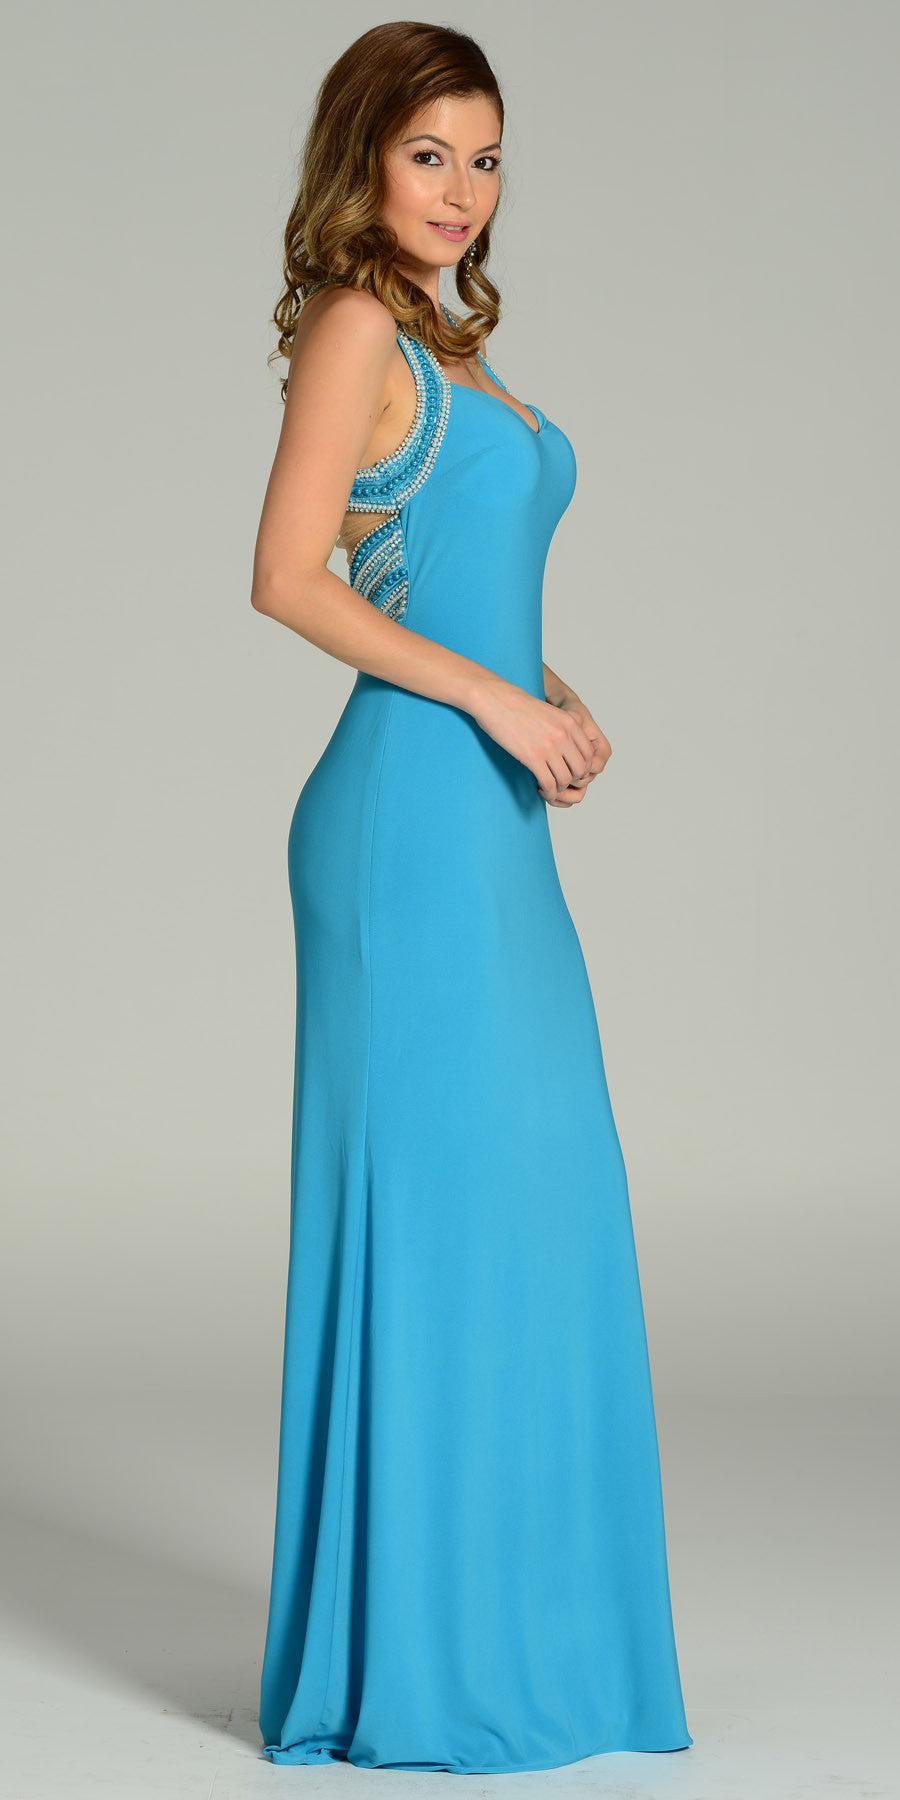 ON SPECIAL LIMITED STOCK - Form Fitting Floor Length Light Teal Formal Gown Wide Straps